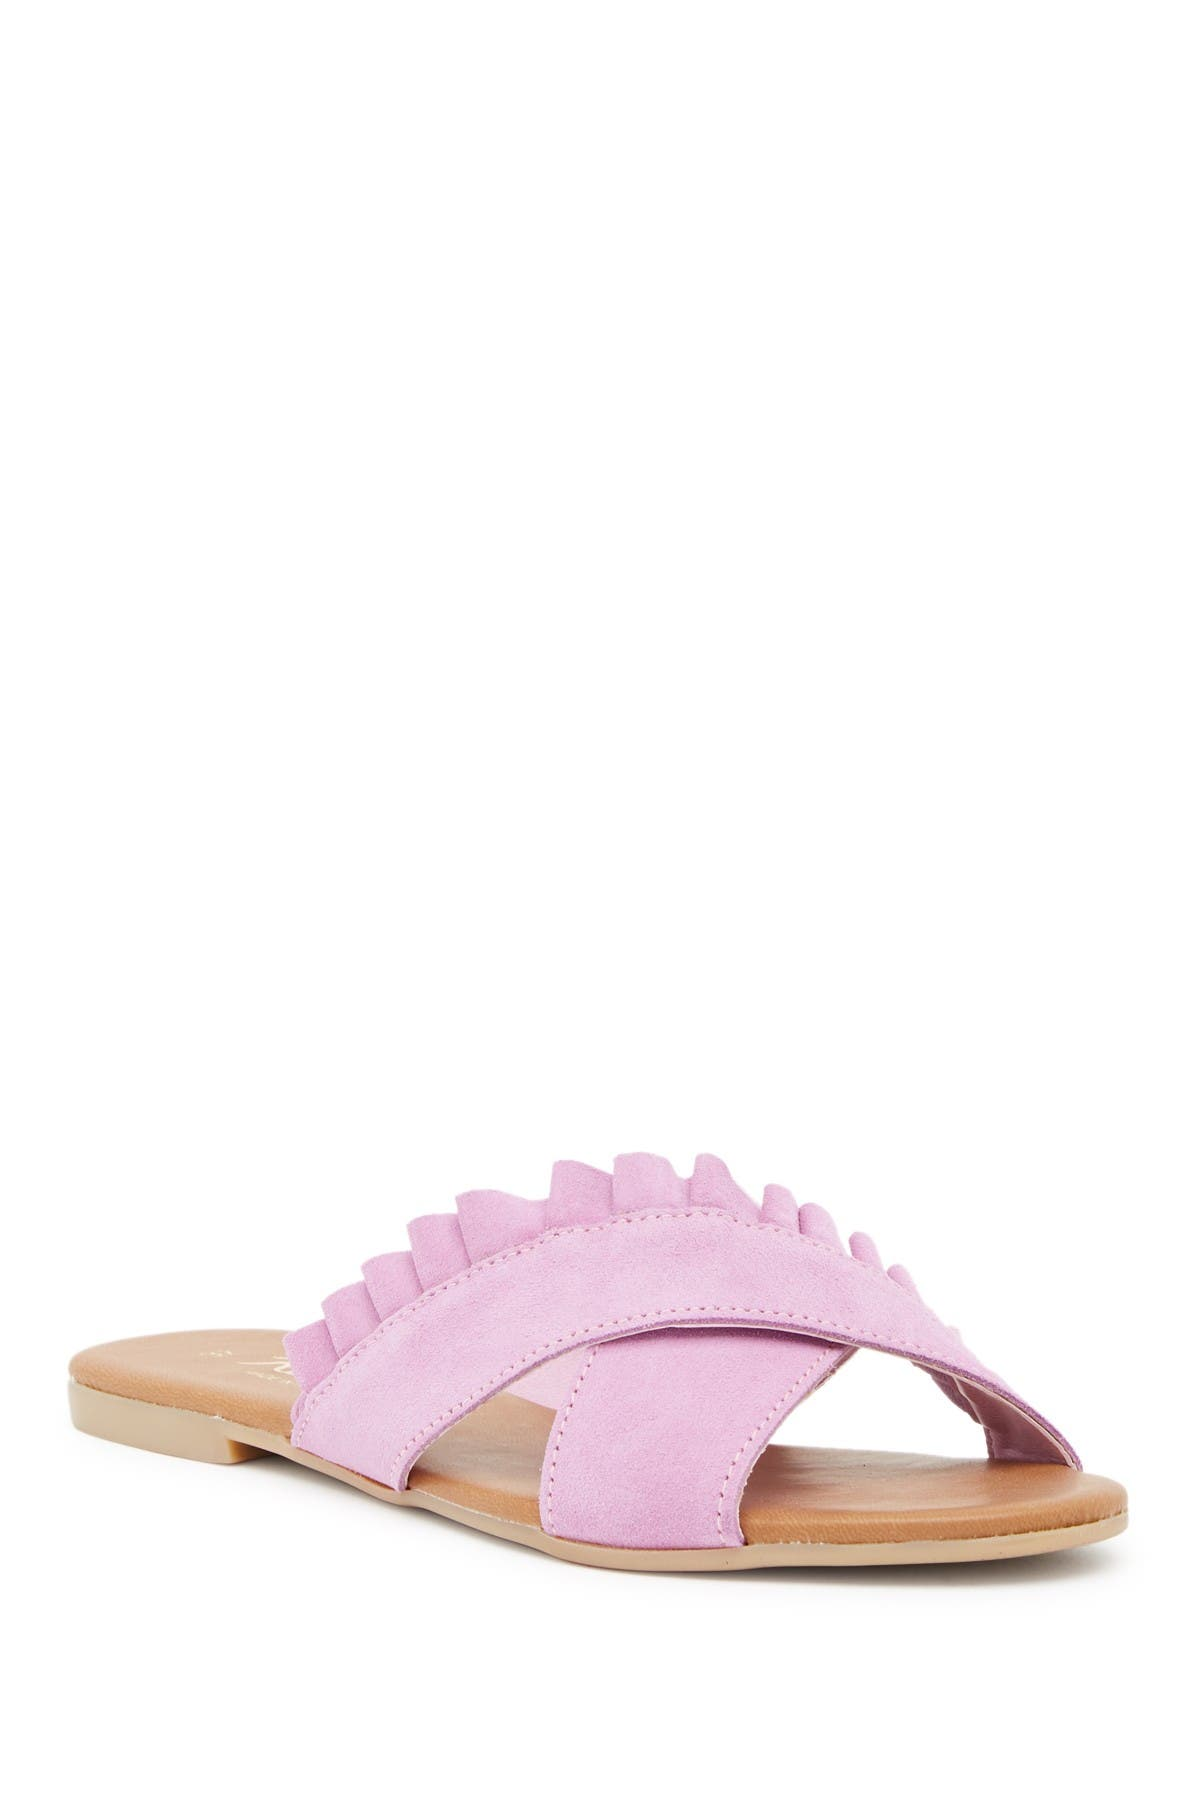 Image of Rebels Daray Slide Sandal